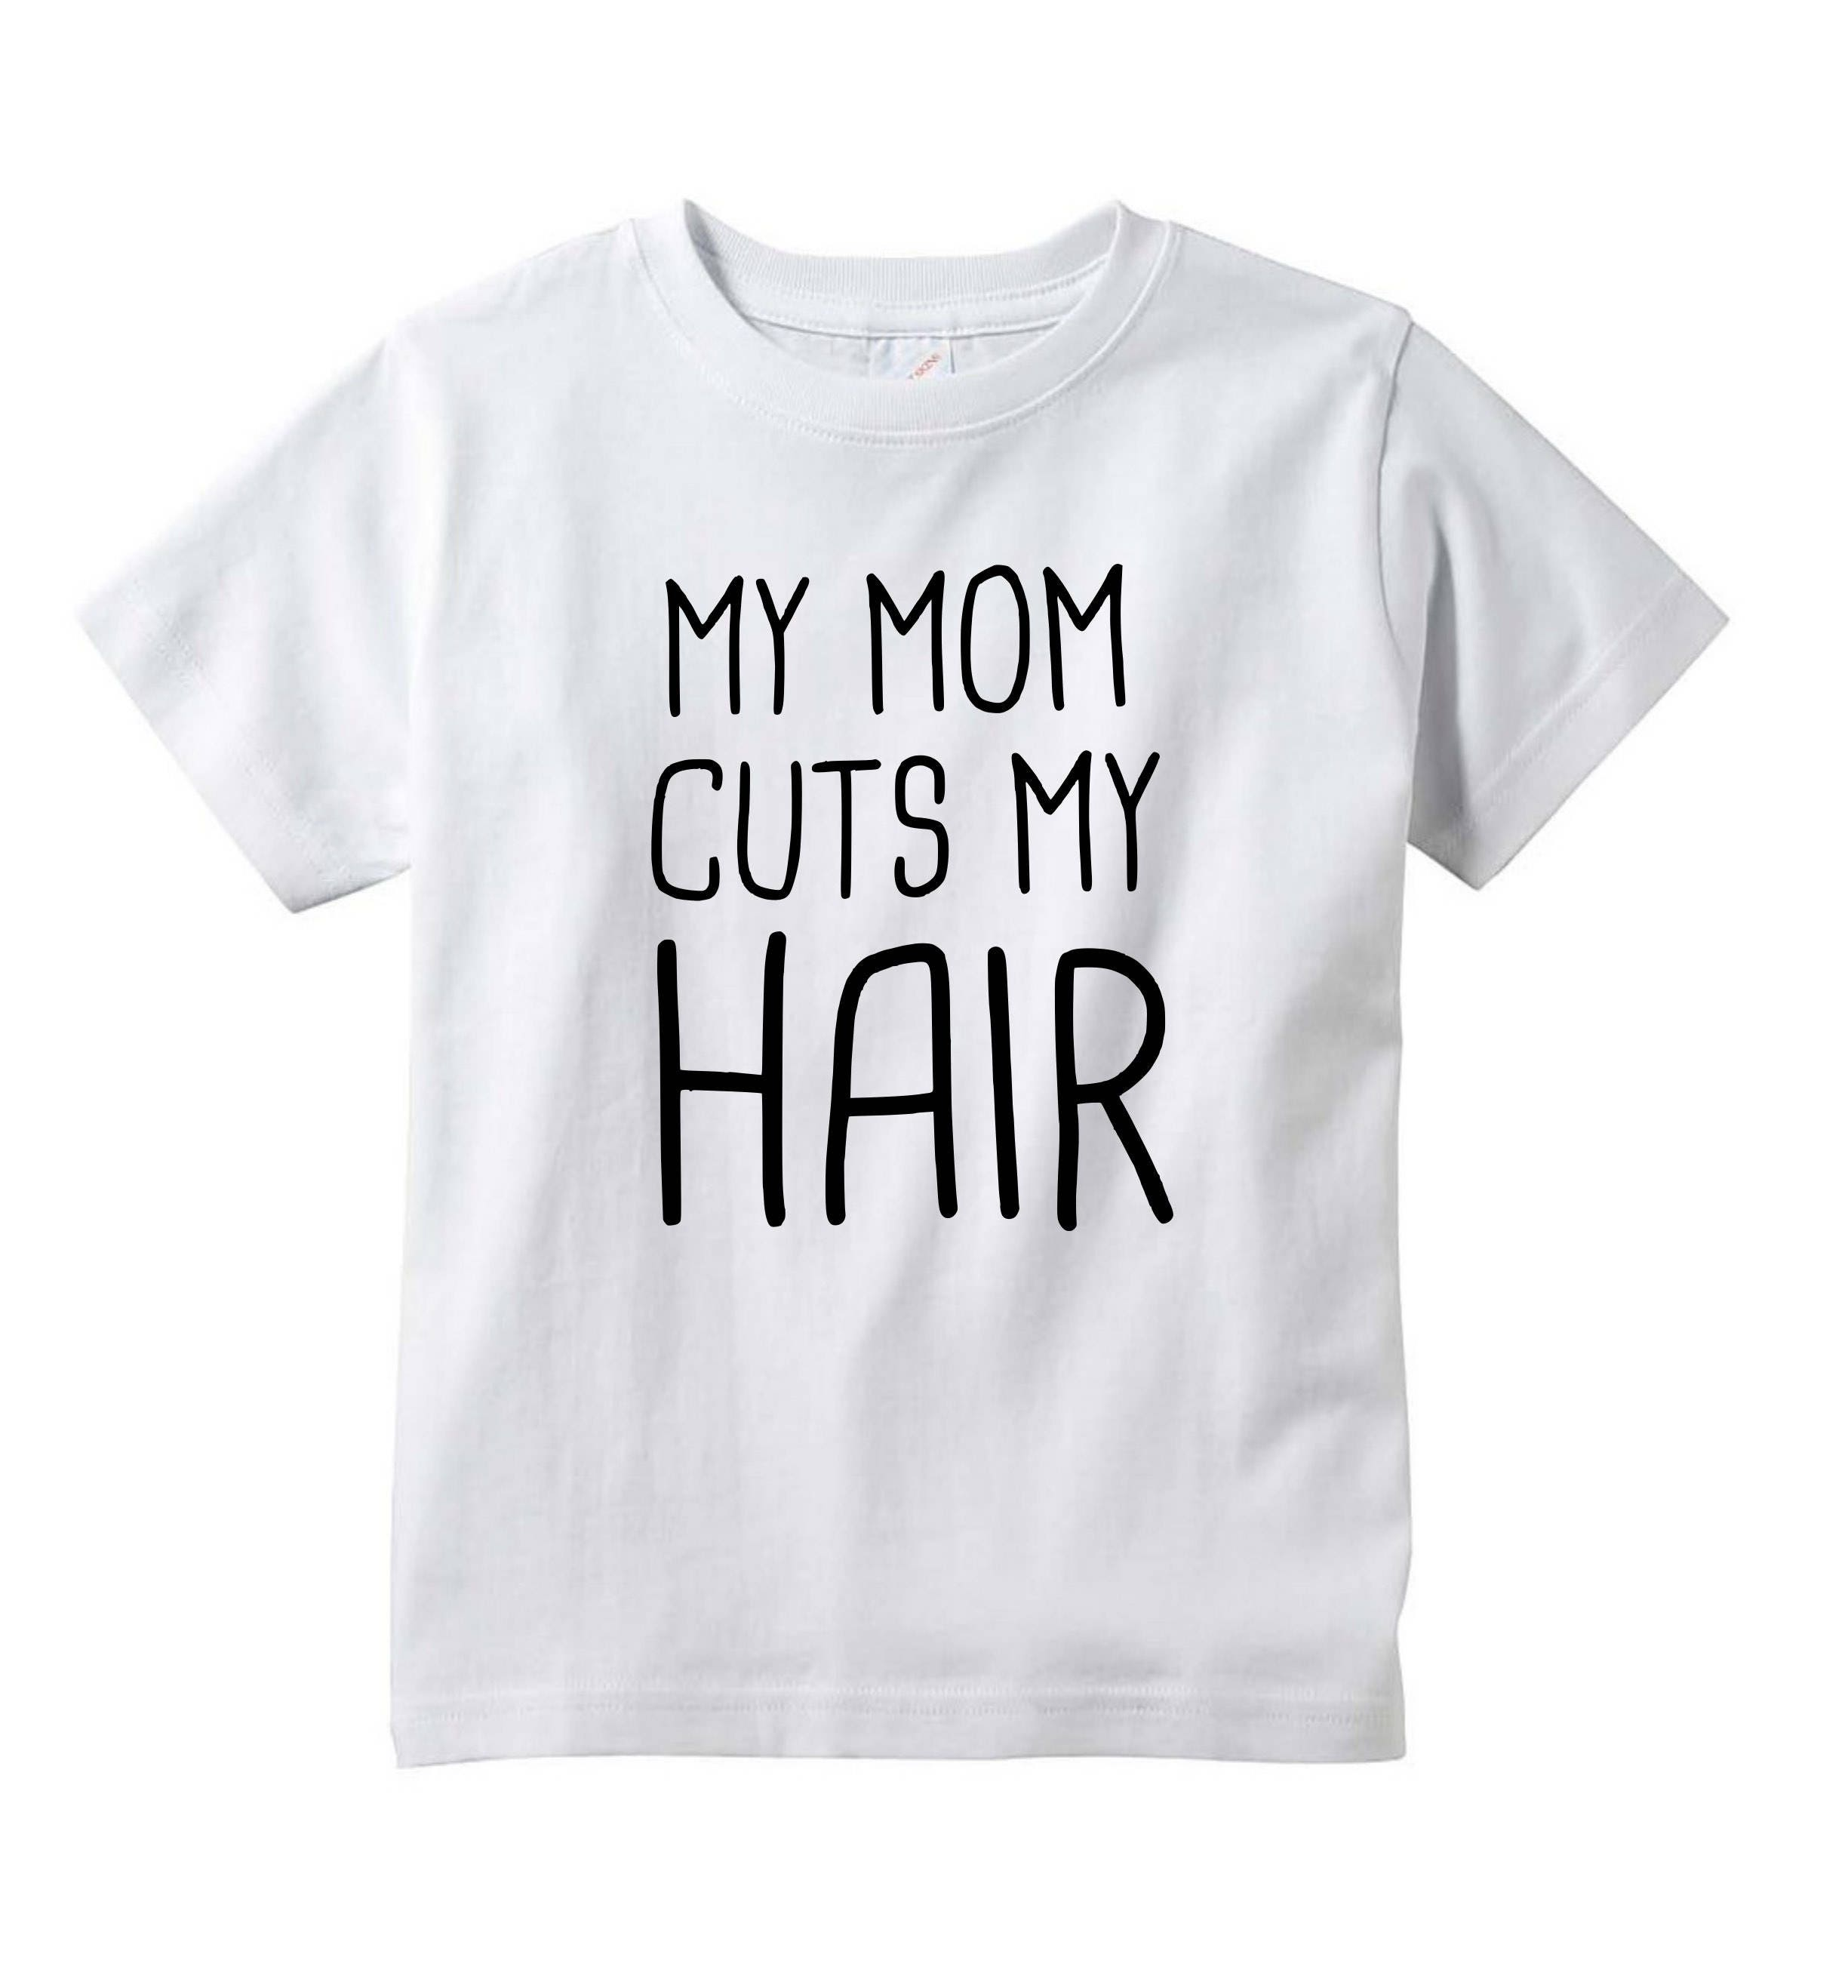 Shirts t funny for kids